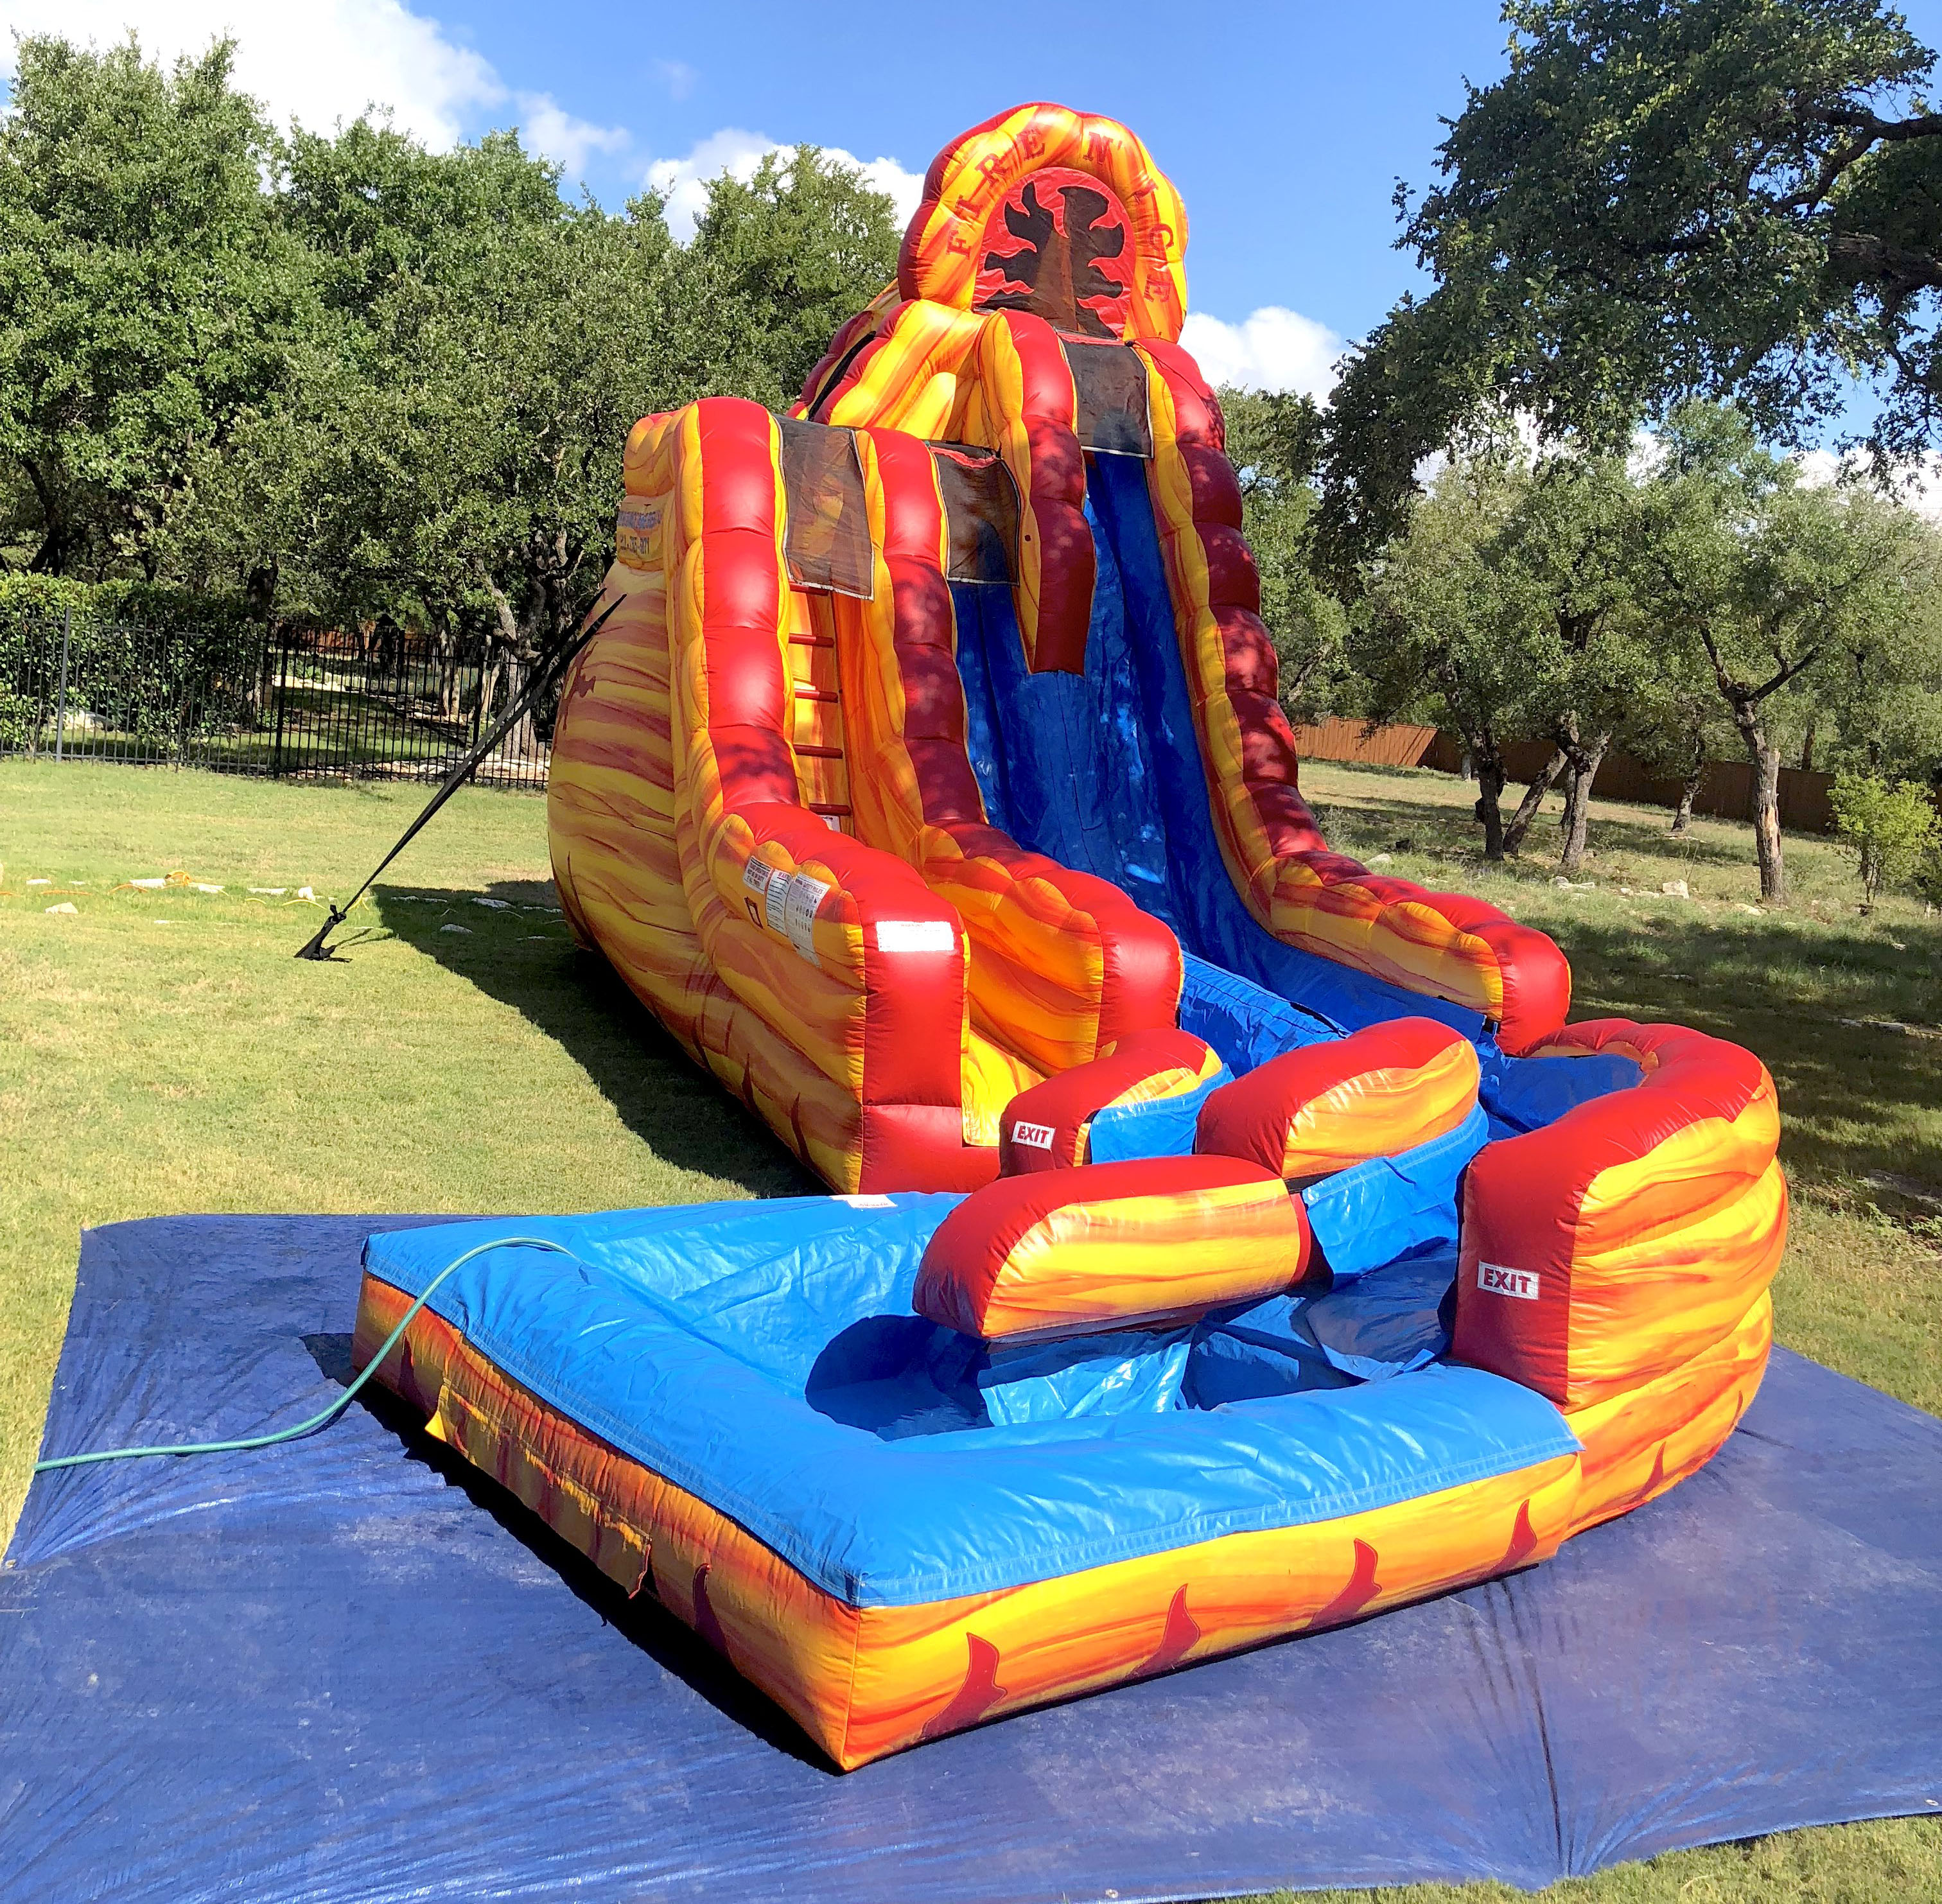 Super Water Slide setup in backyard on grass